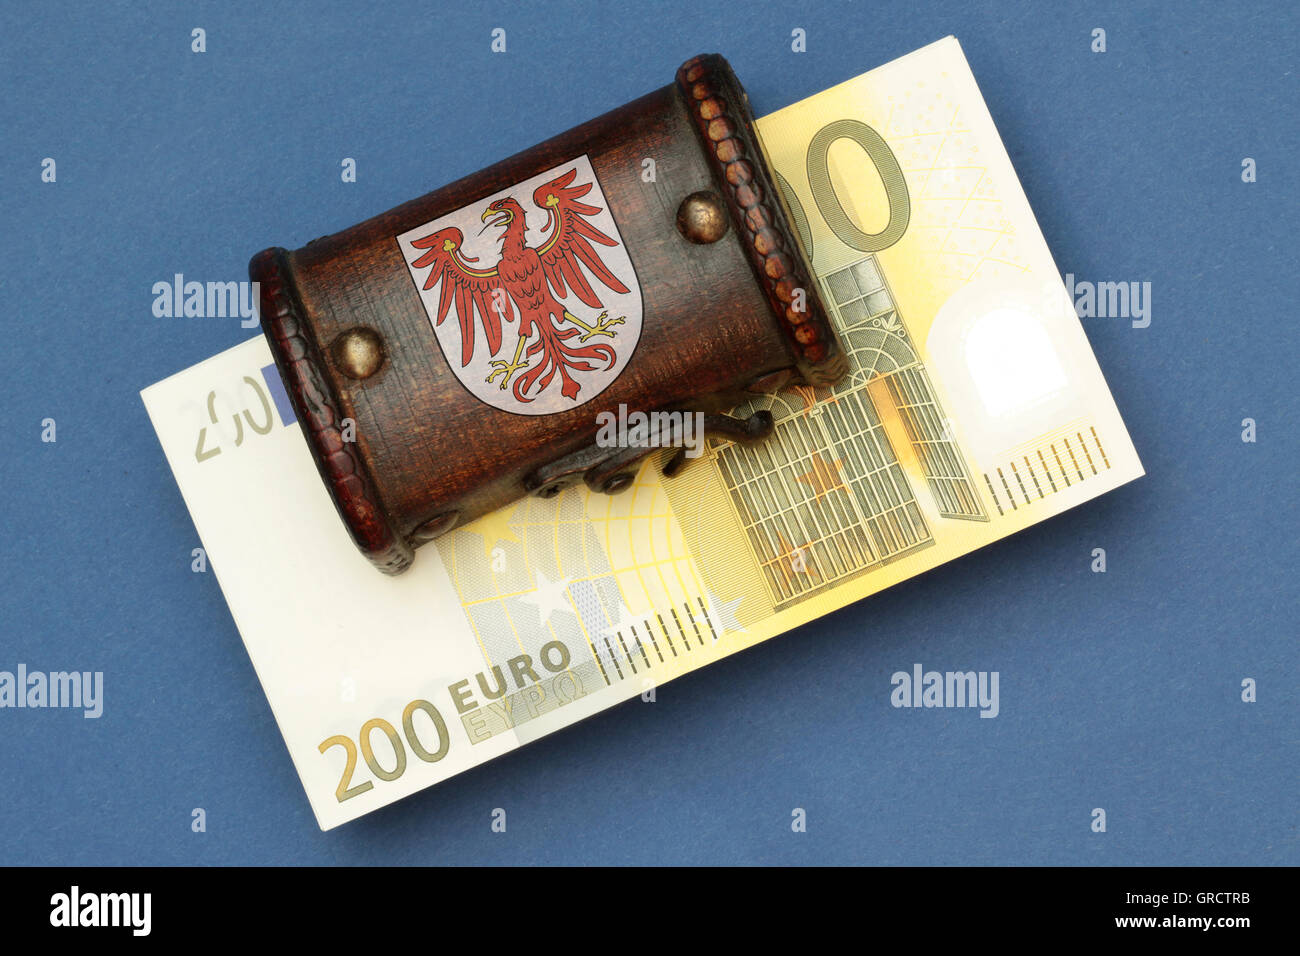 Treasure Chest With Seal Of State Brandenburg And Euro Bills - Stock Image